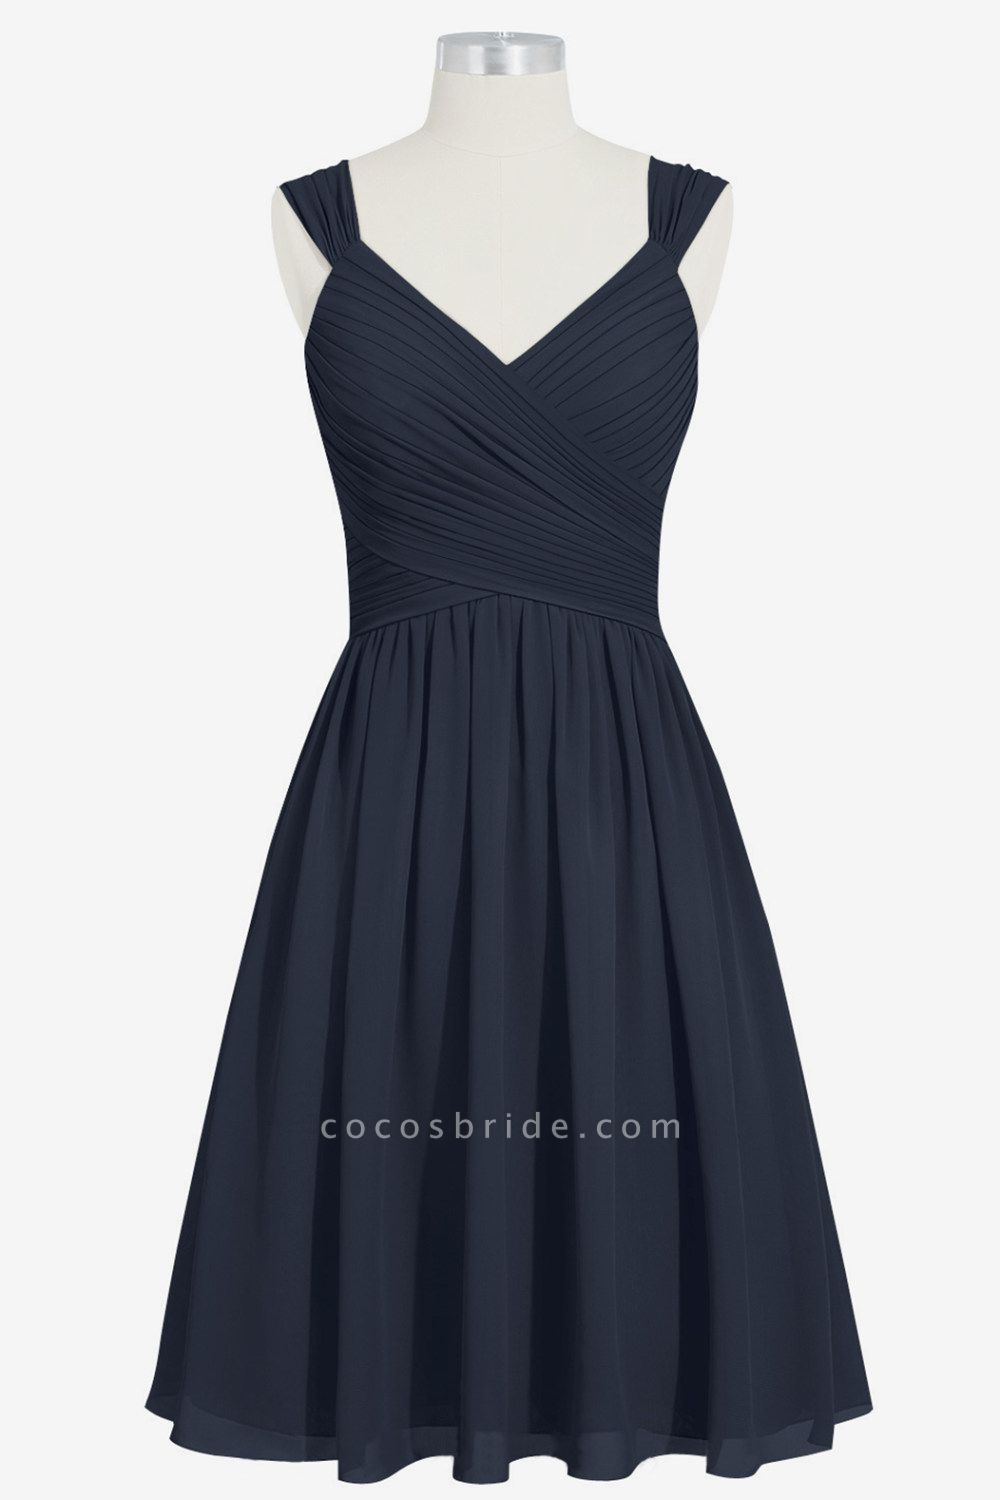 https://www.cocosbride.com/best-ruffle-short-chiffon-a-line-bridesmaid-dress-g424?cate_2=69